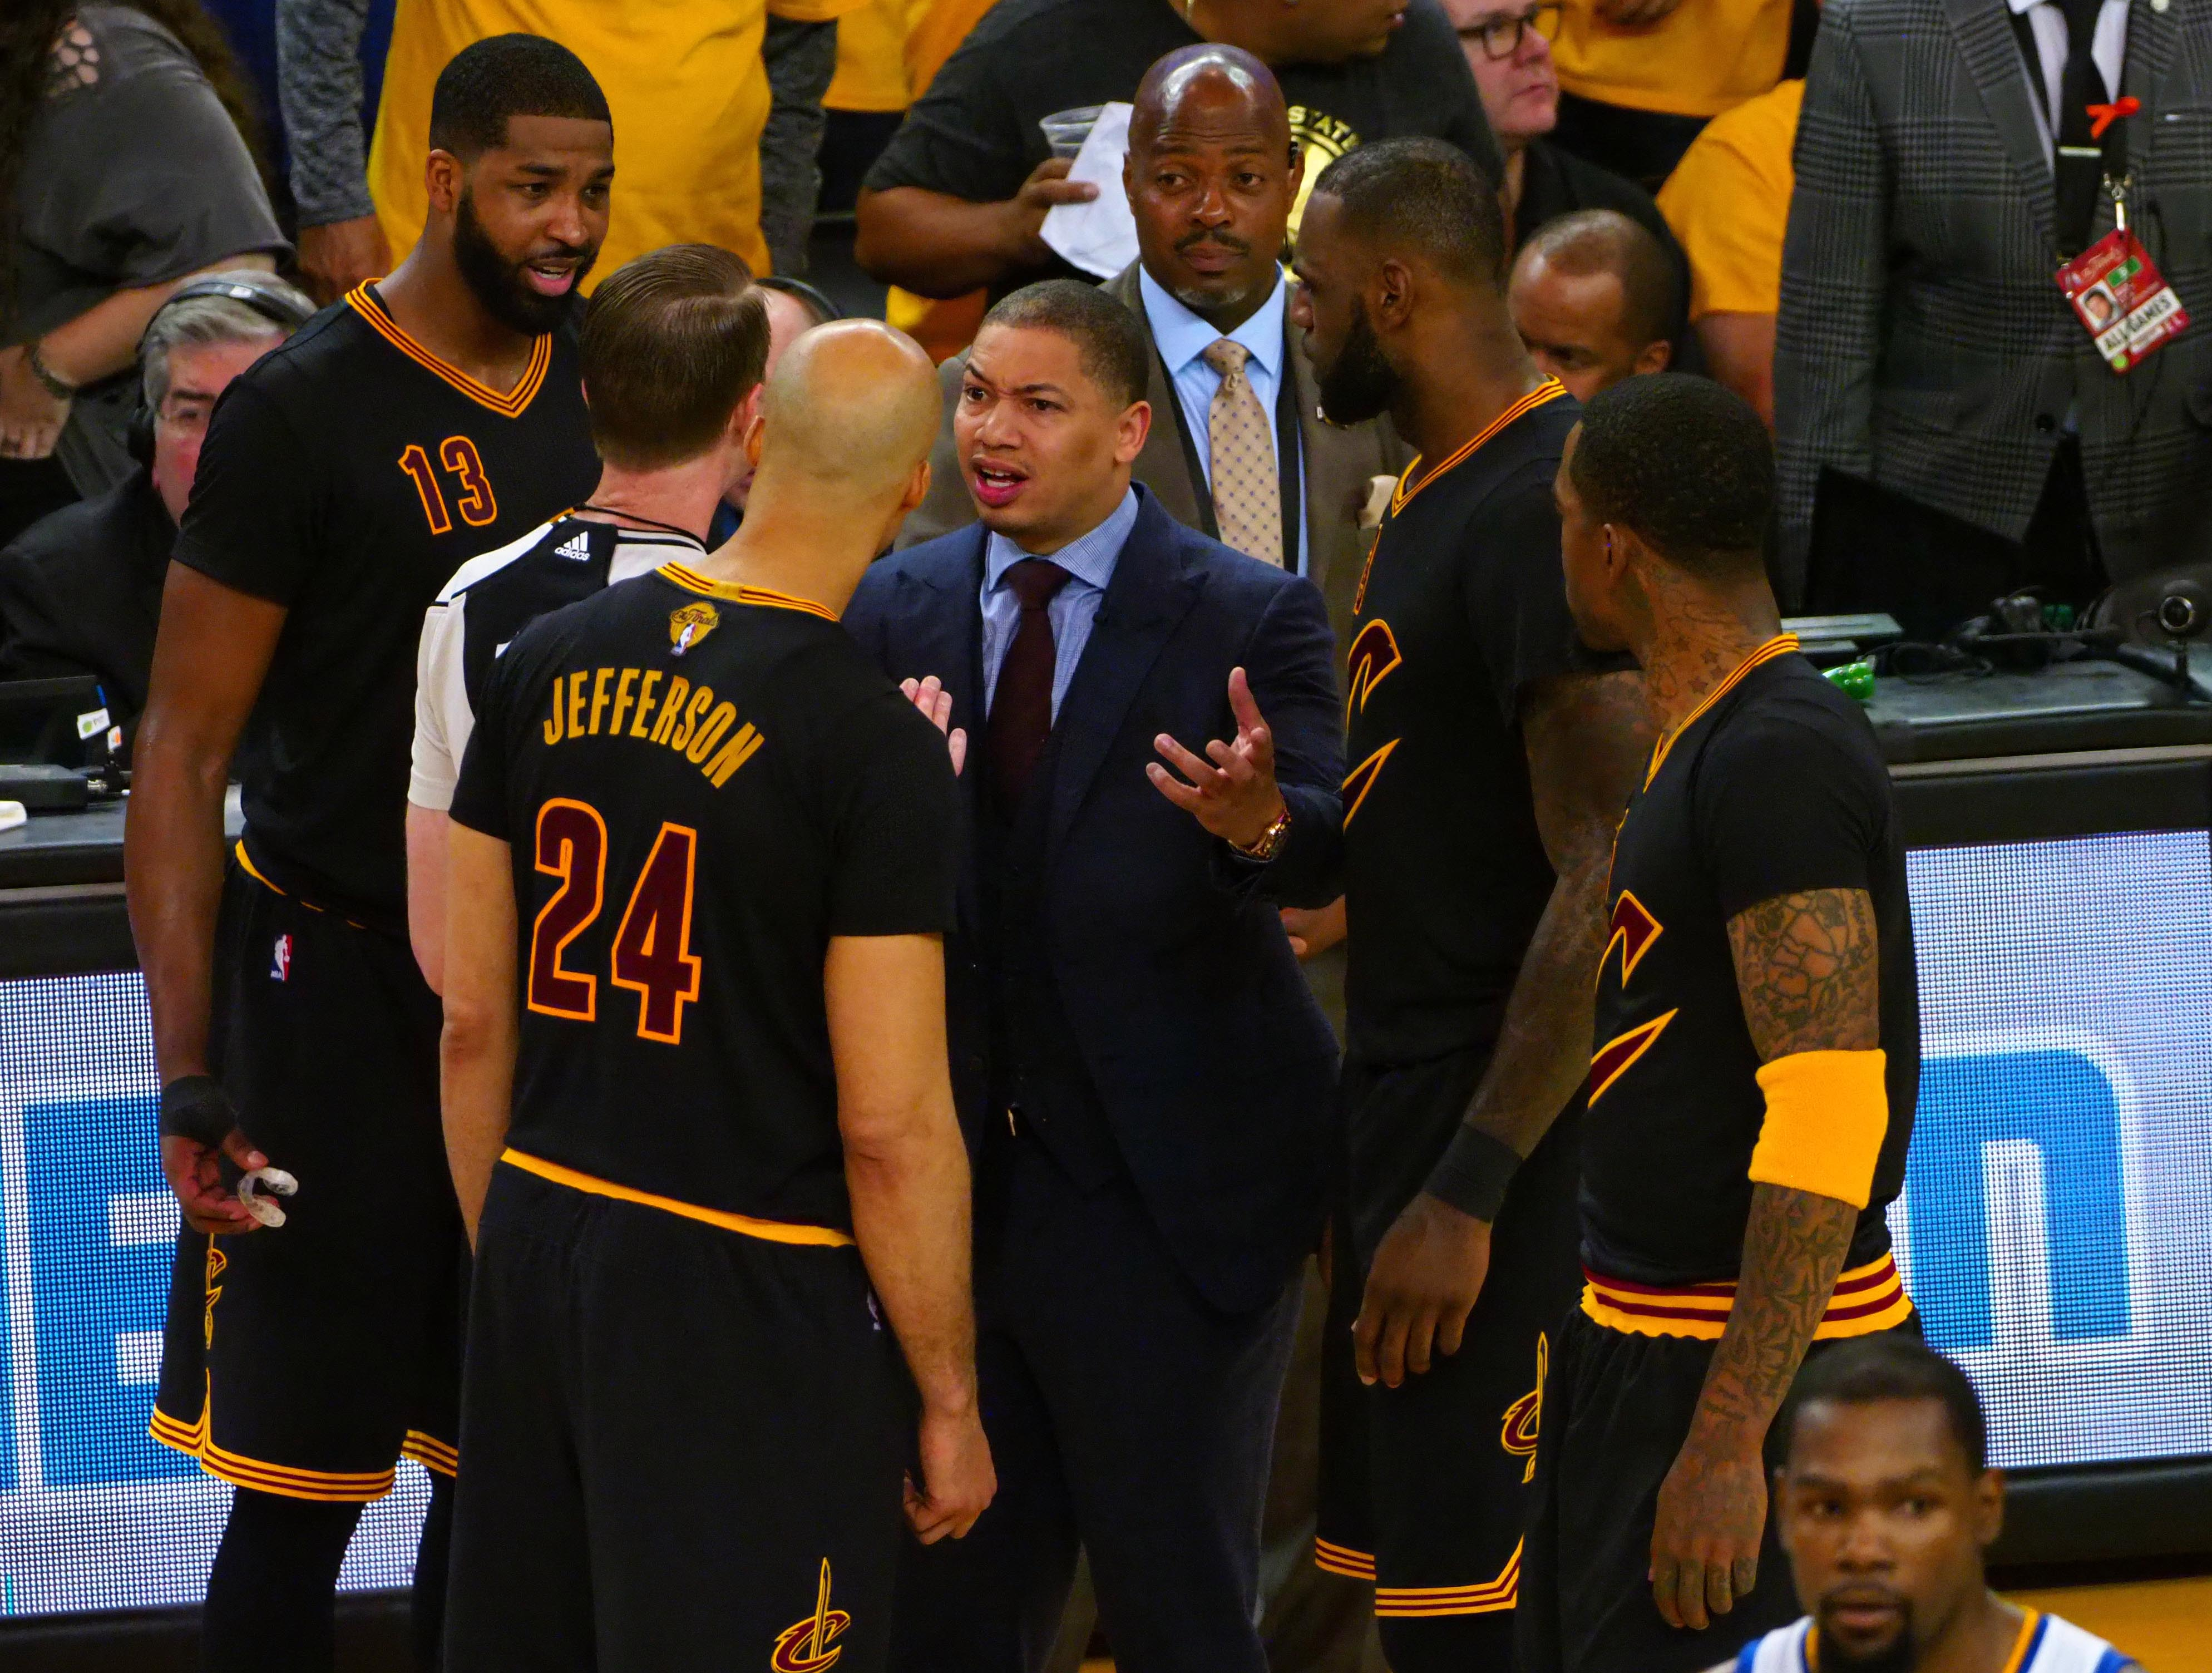 10105669-nba-finals-cleveland-cavaliers-at-golden-state-warriors